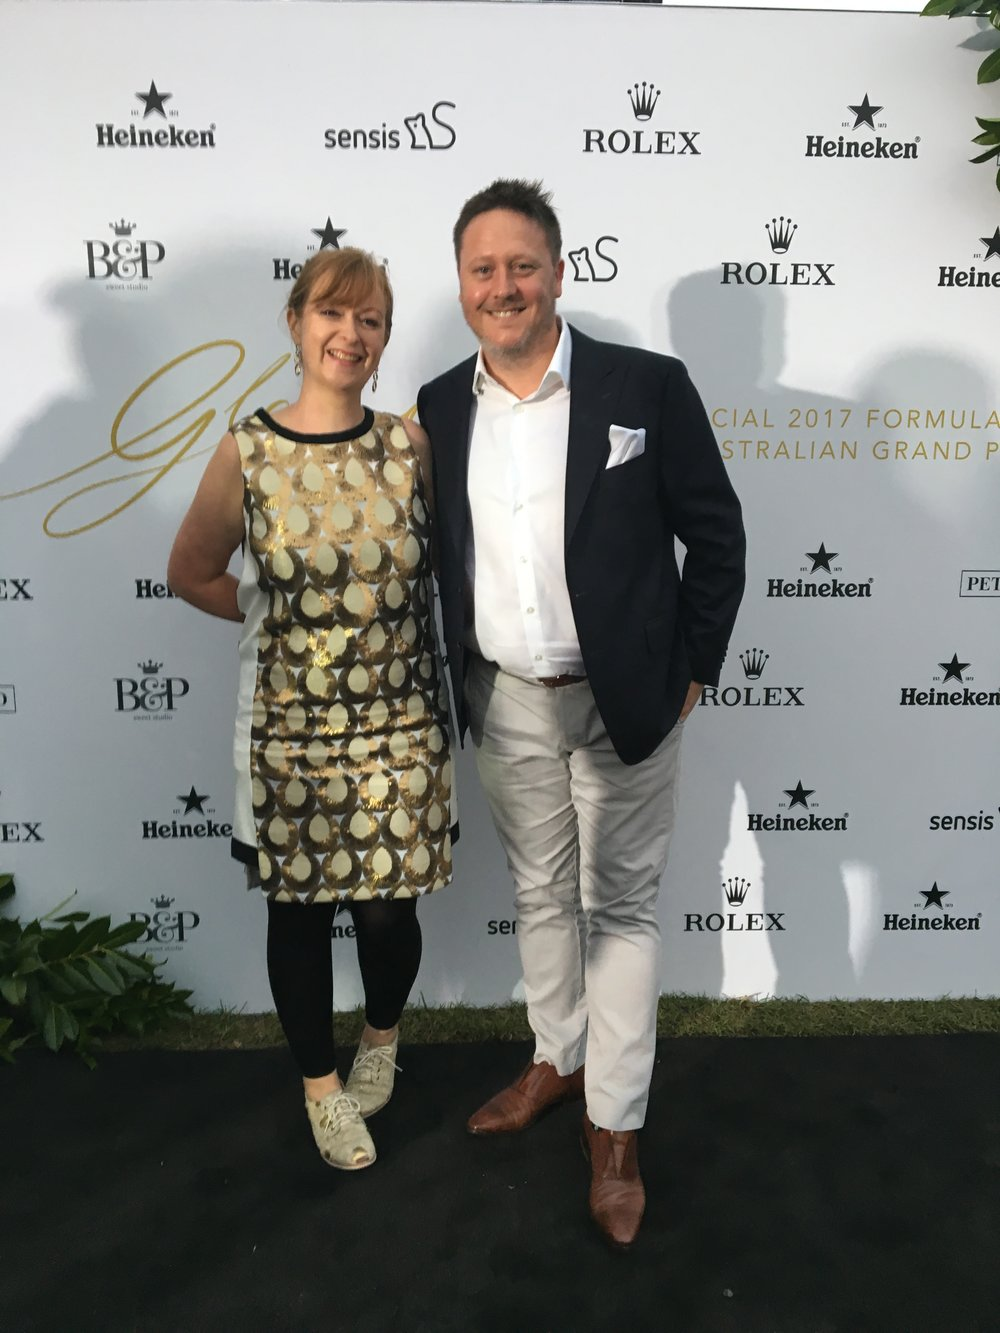 Out with Burch & Purchese driving force (and my wife) Cath for rare night out on the red carpet. Great to stand in front of the B&P media wall.